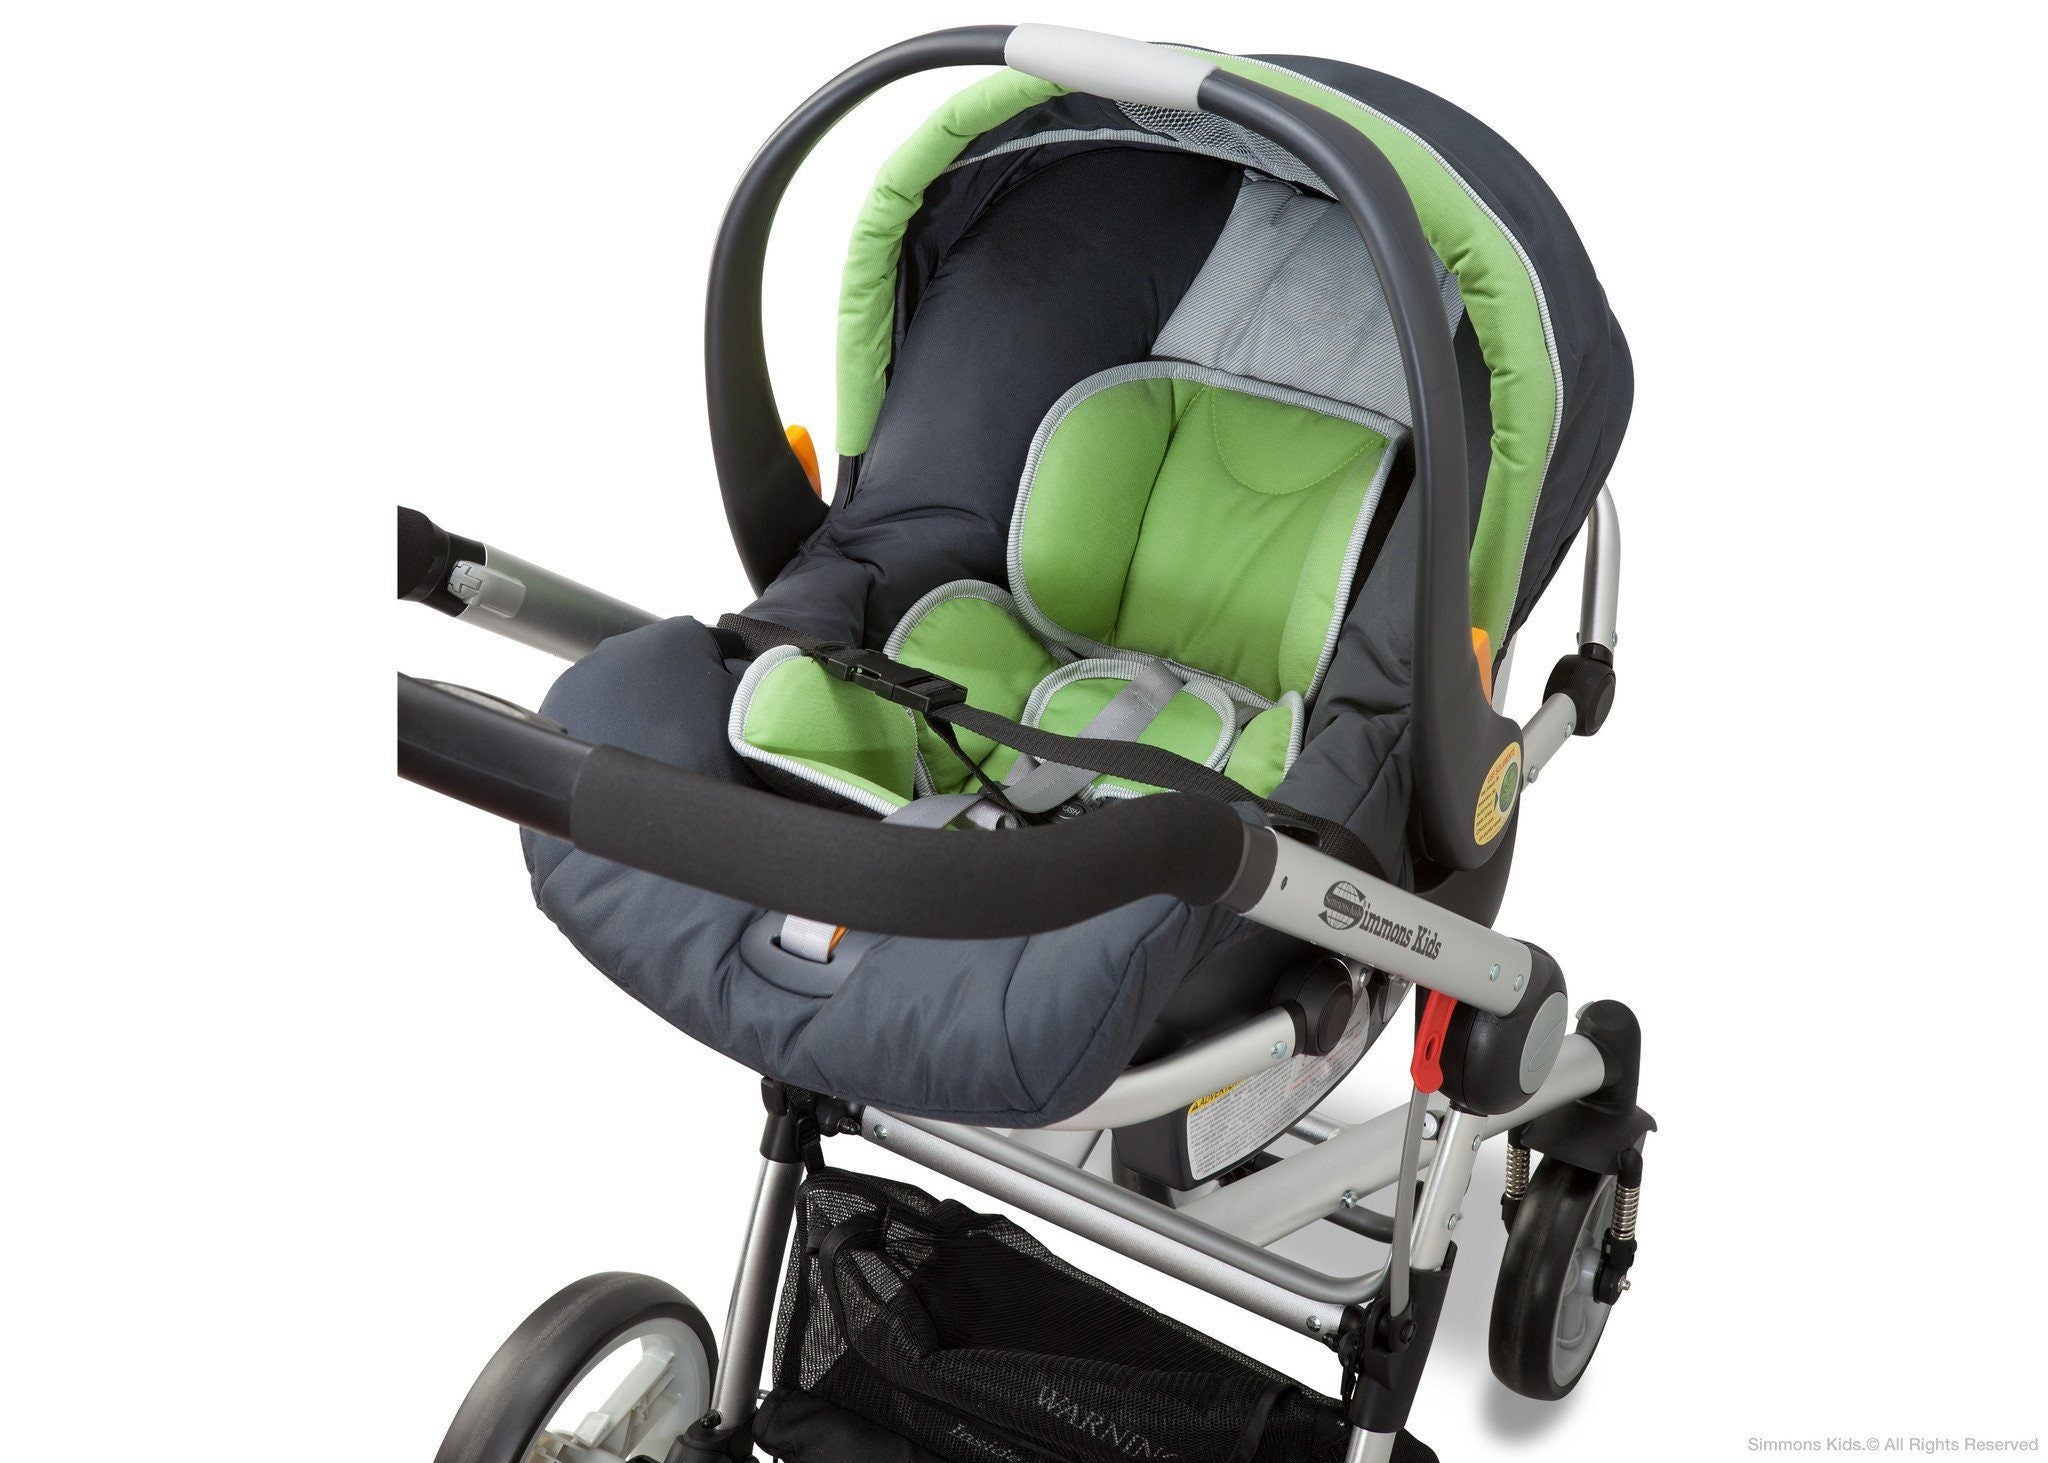 Simmons Kids Black with Green Trim (013) Comfort Tech Tour Buggy Stroller, Full Left View with Seat Detail a3a